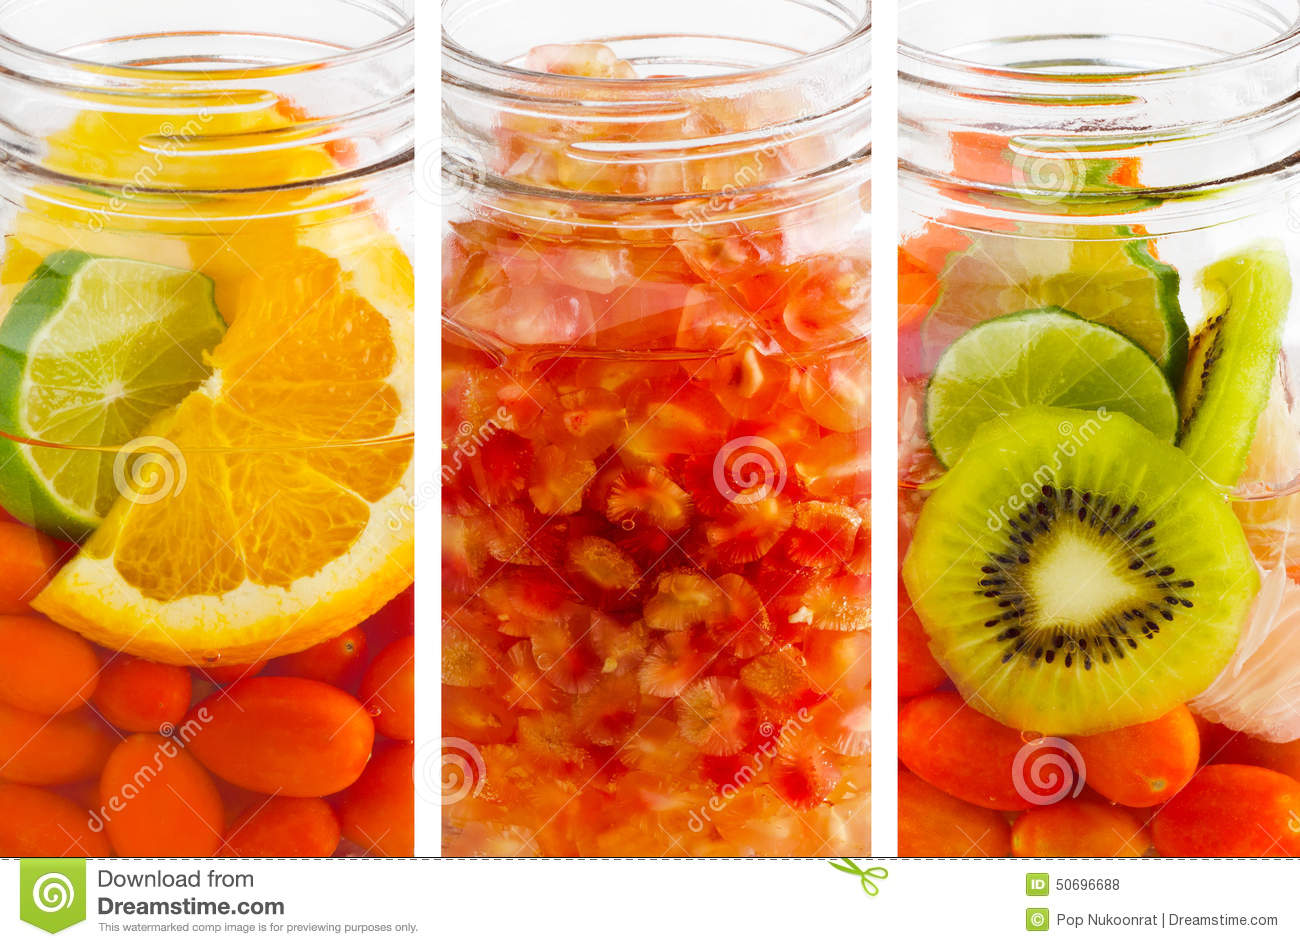 Delicious refreshing drink of mix fruits vibrant vertical stripes, infusion water